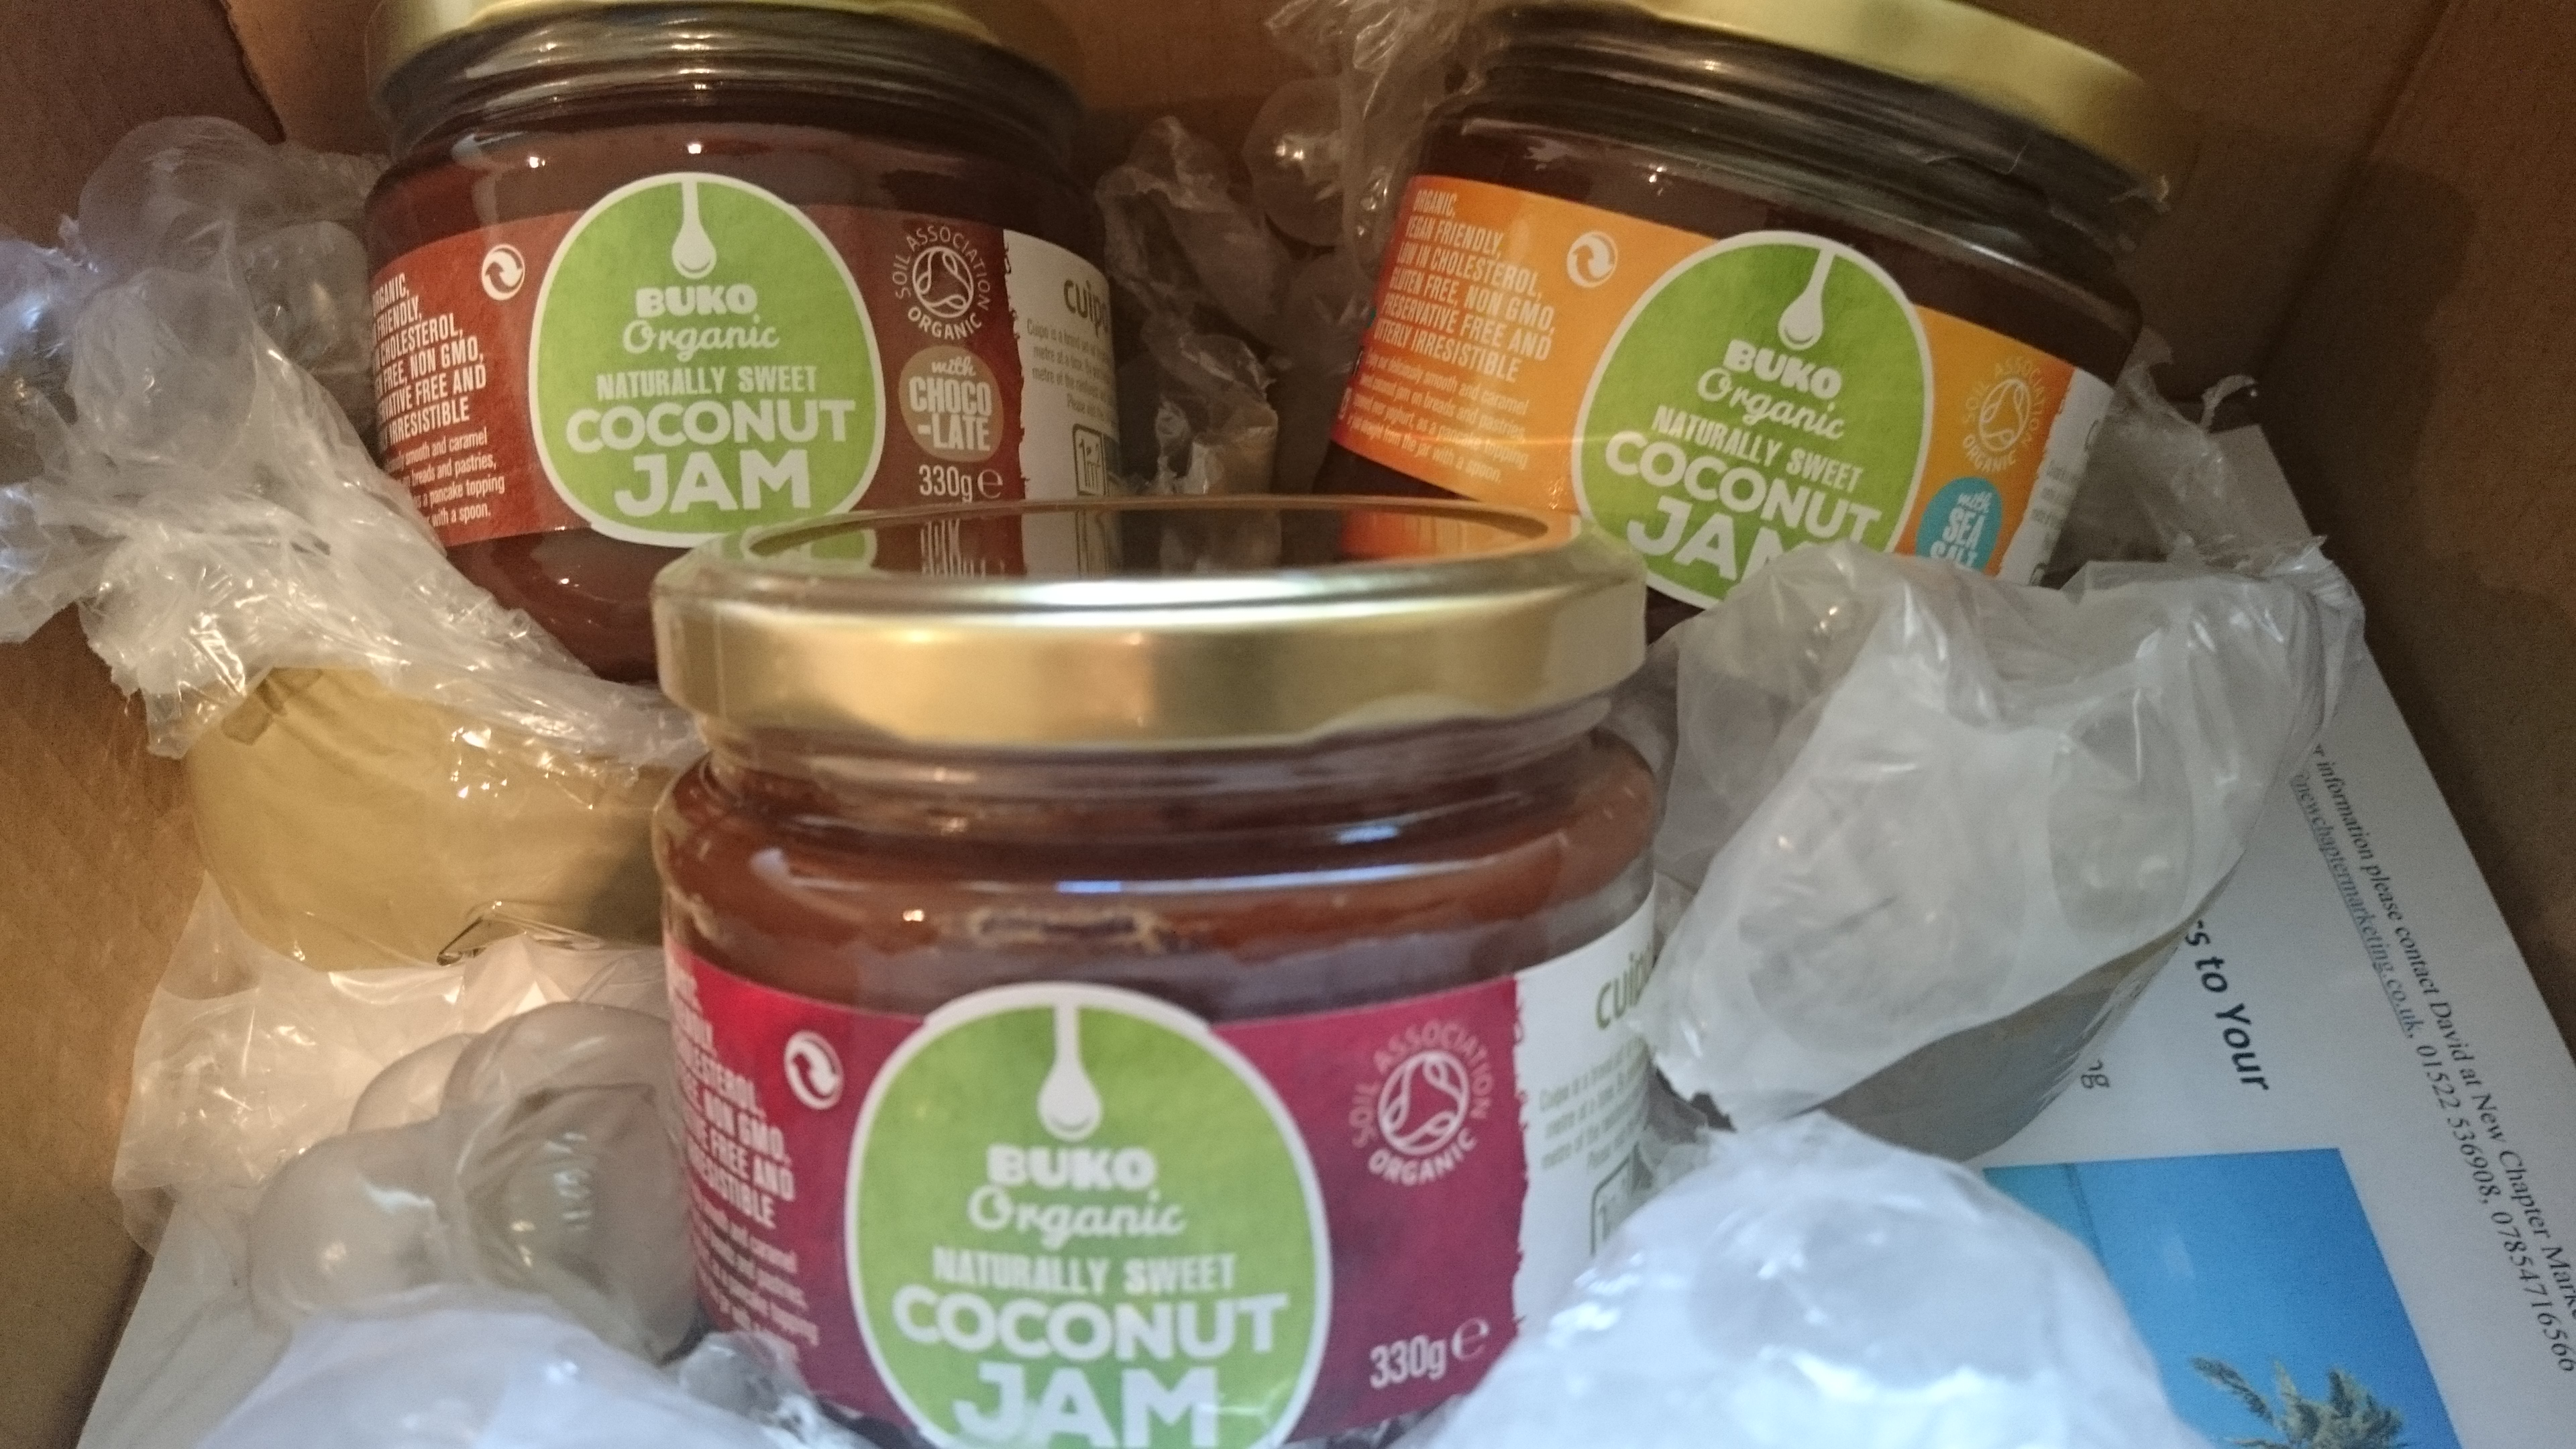 Organic Buko Coconut Jam Review